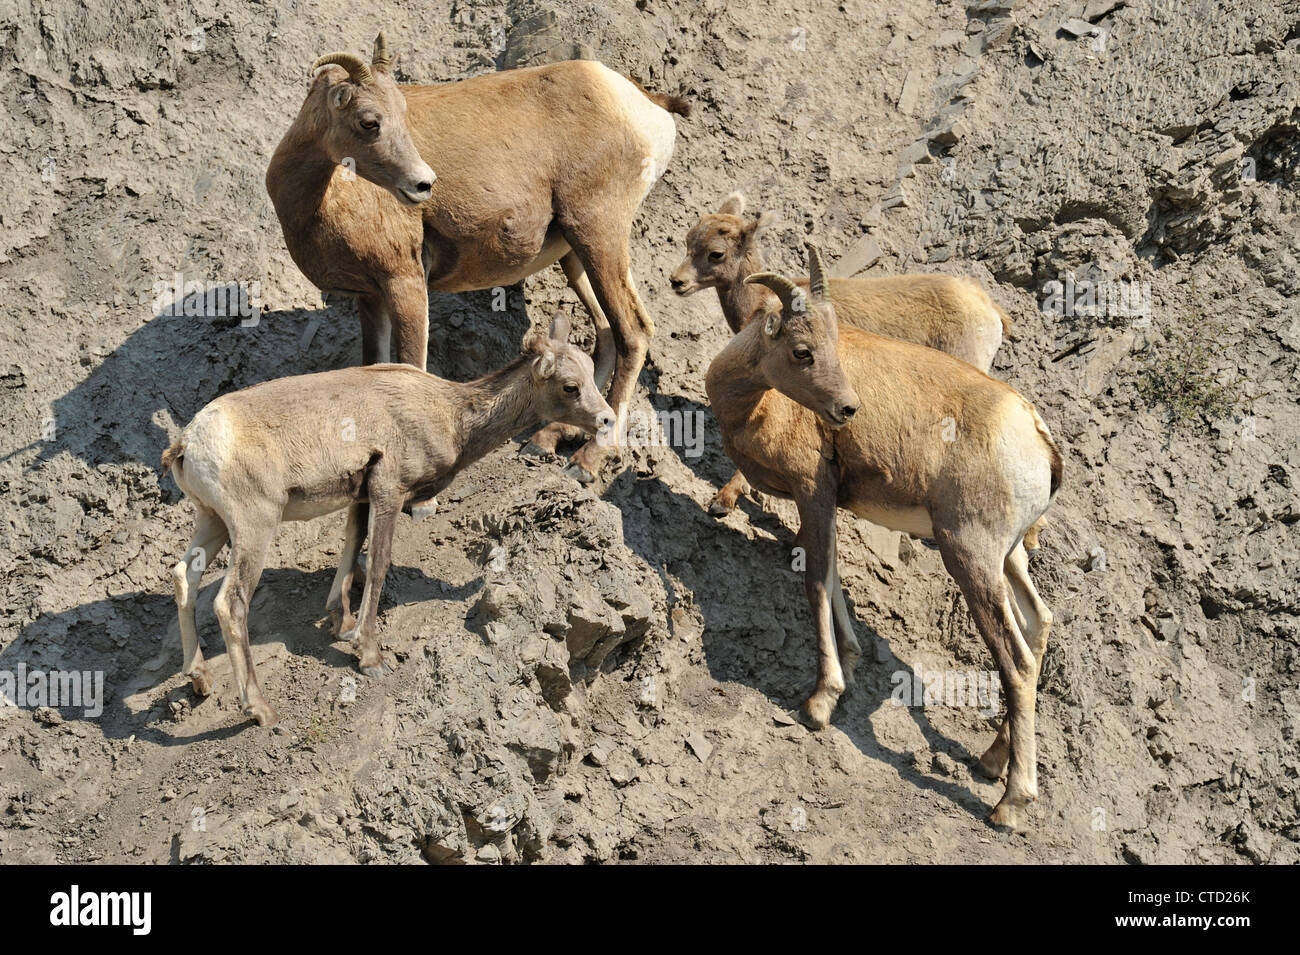 Bighorn sheep (Ovis canadensis) ewes and lambs in Gardner River valley, Yellowstone National Park, Montana, USA - Stock Image